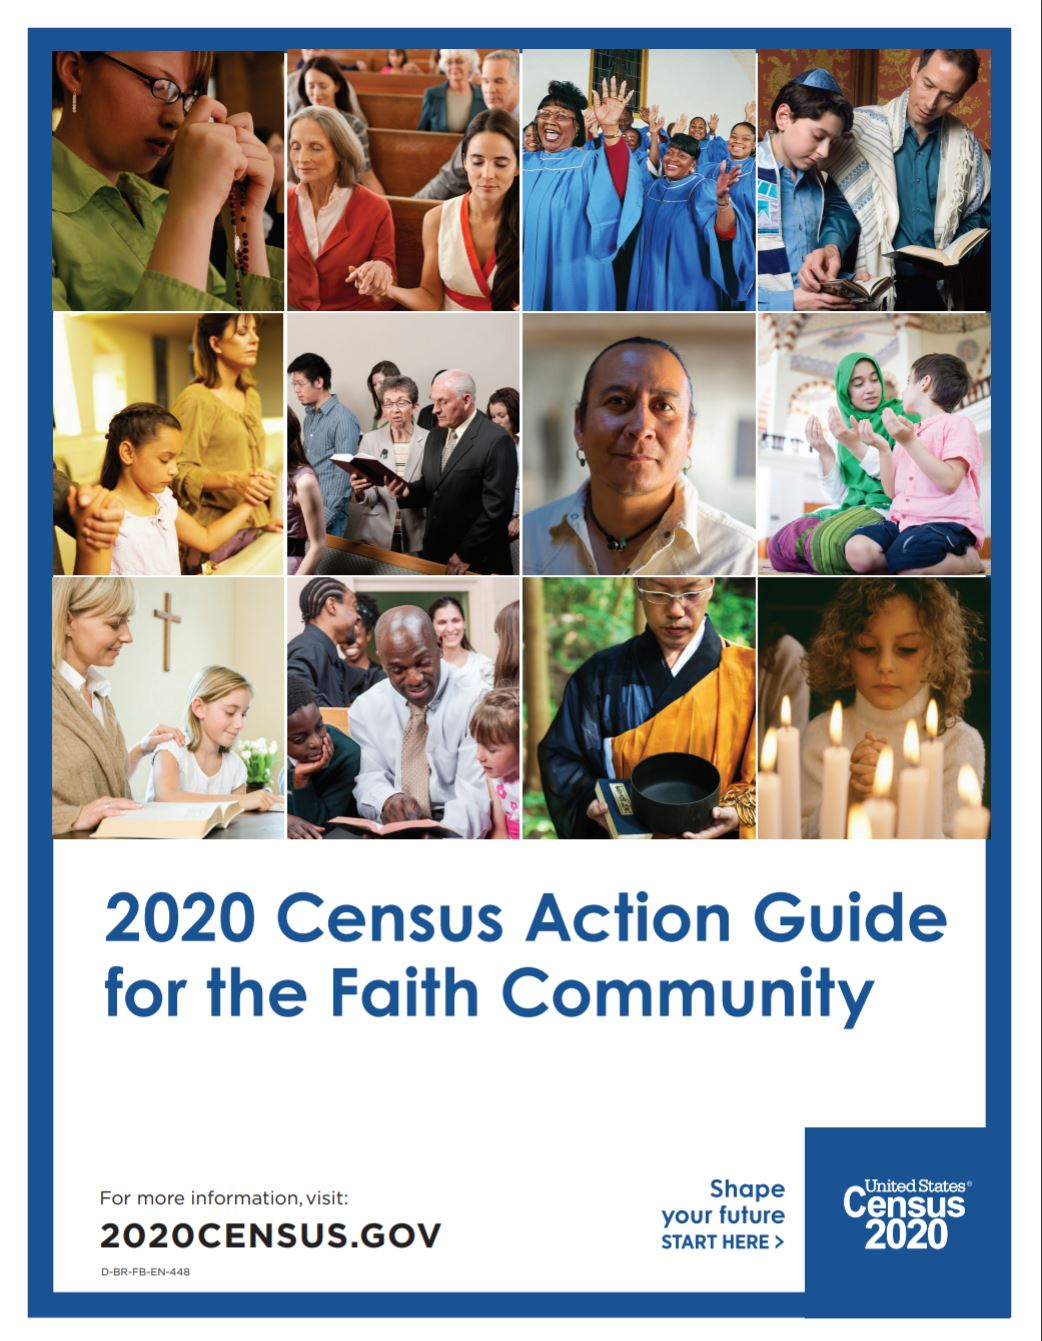 Districts go round and round on school bus reopening plans 2020-Census-Action-Guide-for-the-Faith-Community-Cover